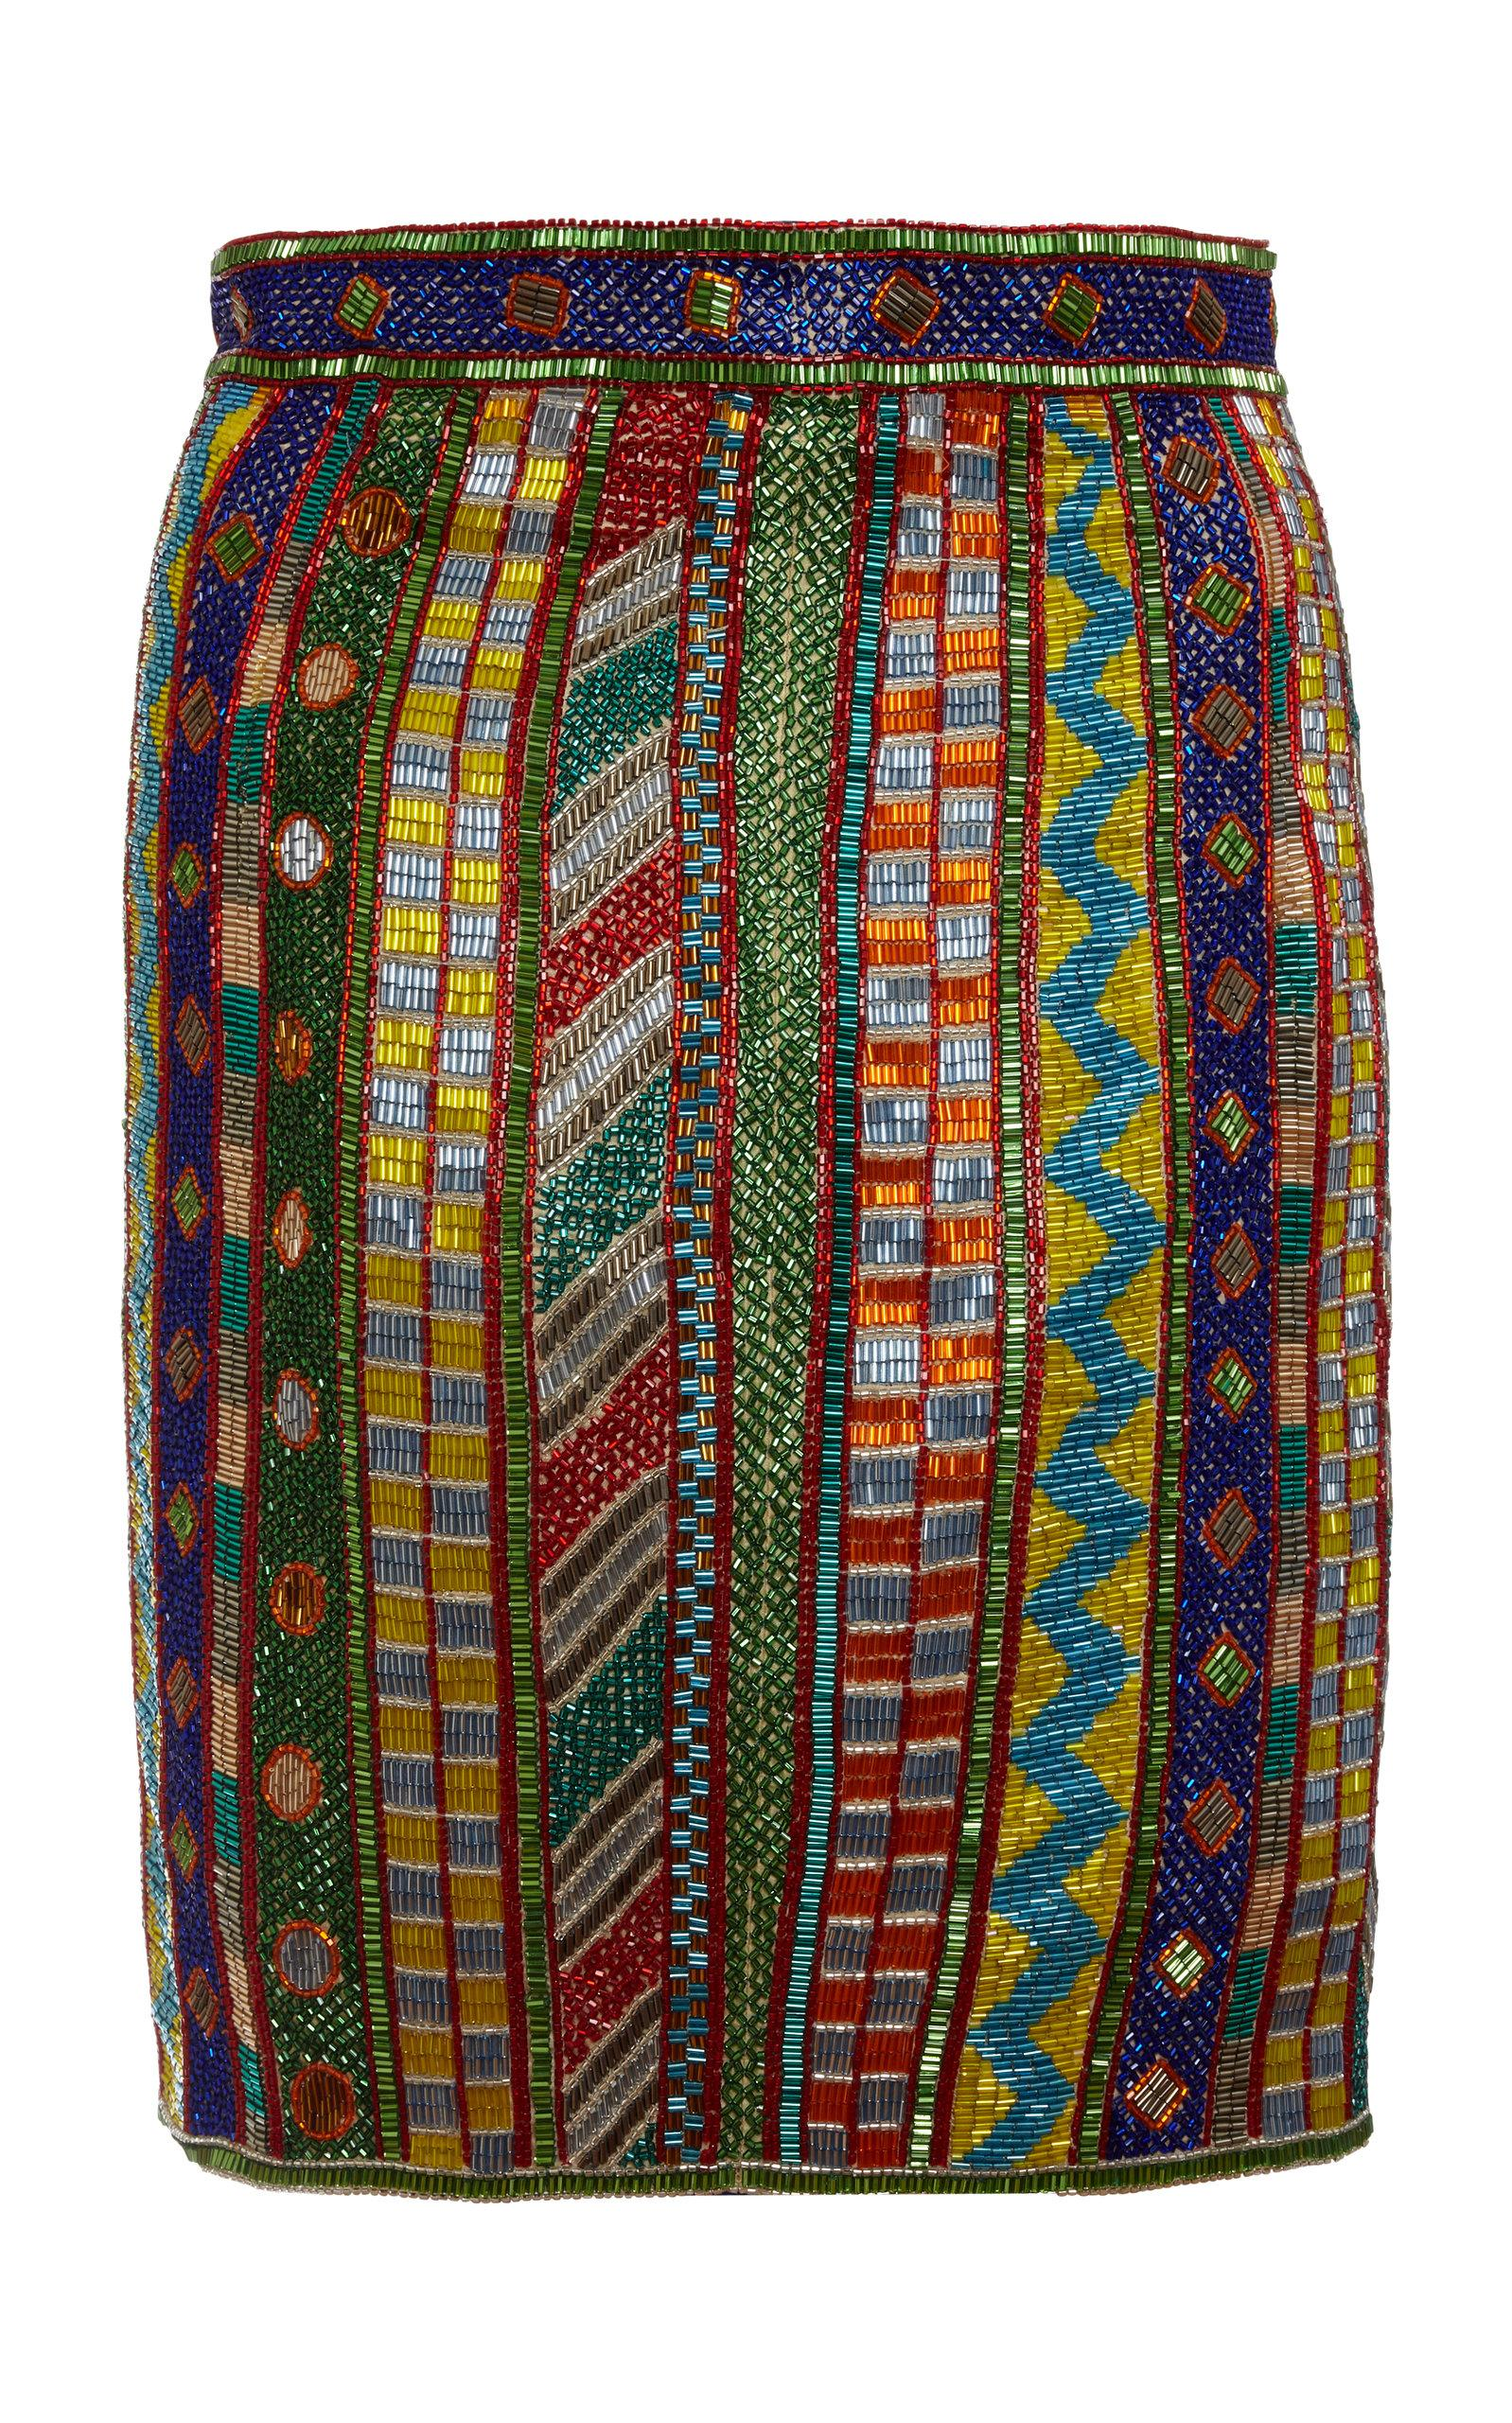 Khosla Jani Embroidered Pencil Skirt In Multi